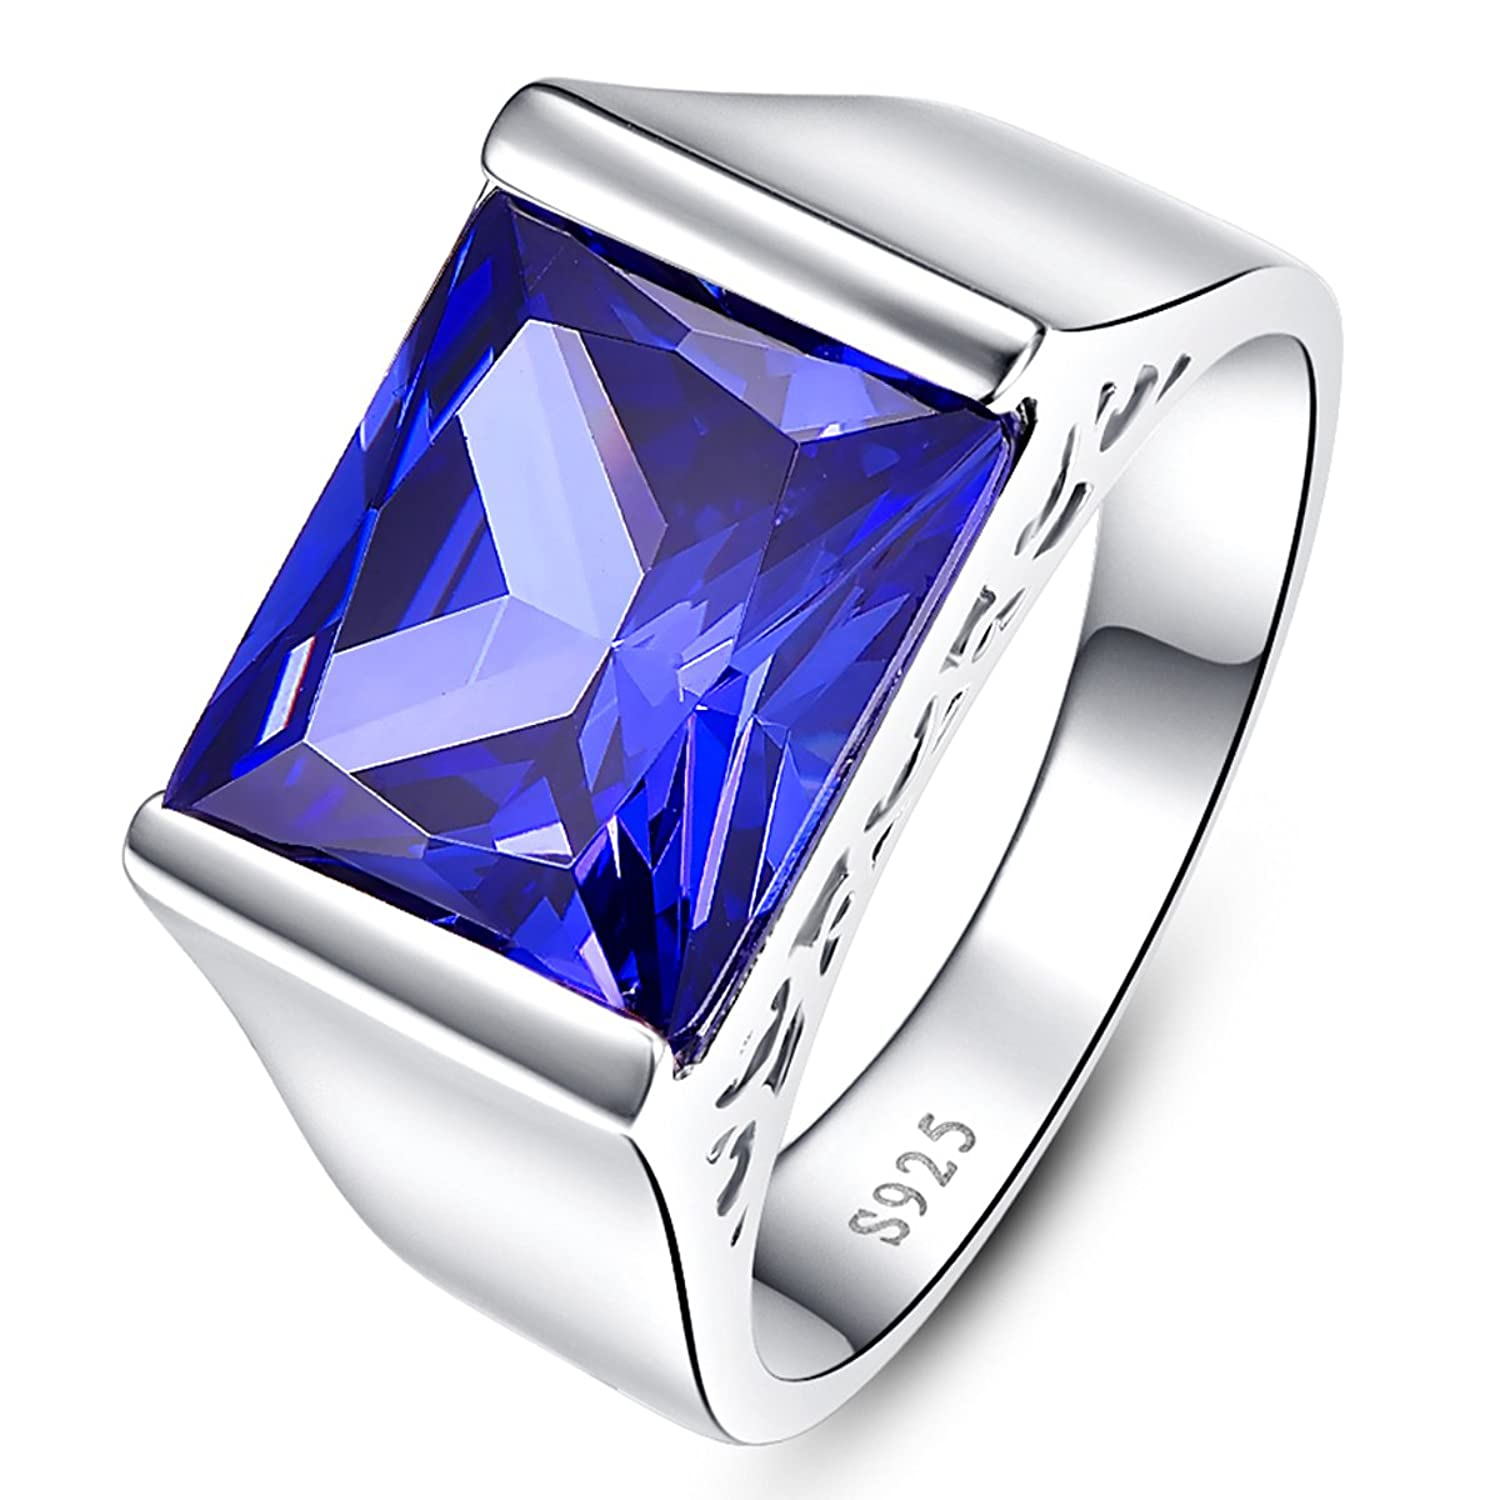 Jewel Tie Cobalt Polished and Satin Grooved 6mm Wedding Band